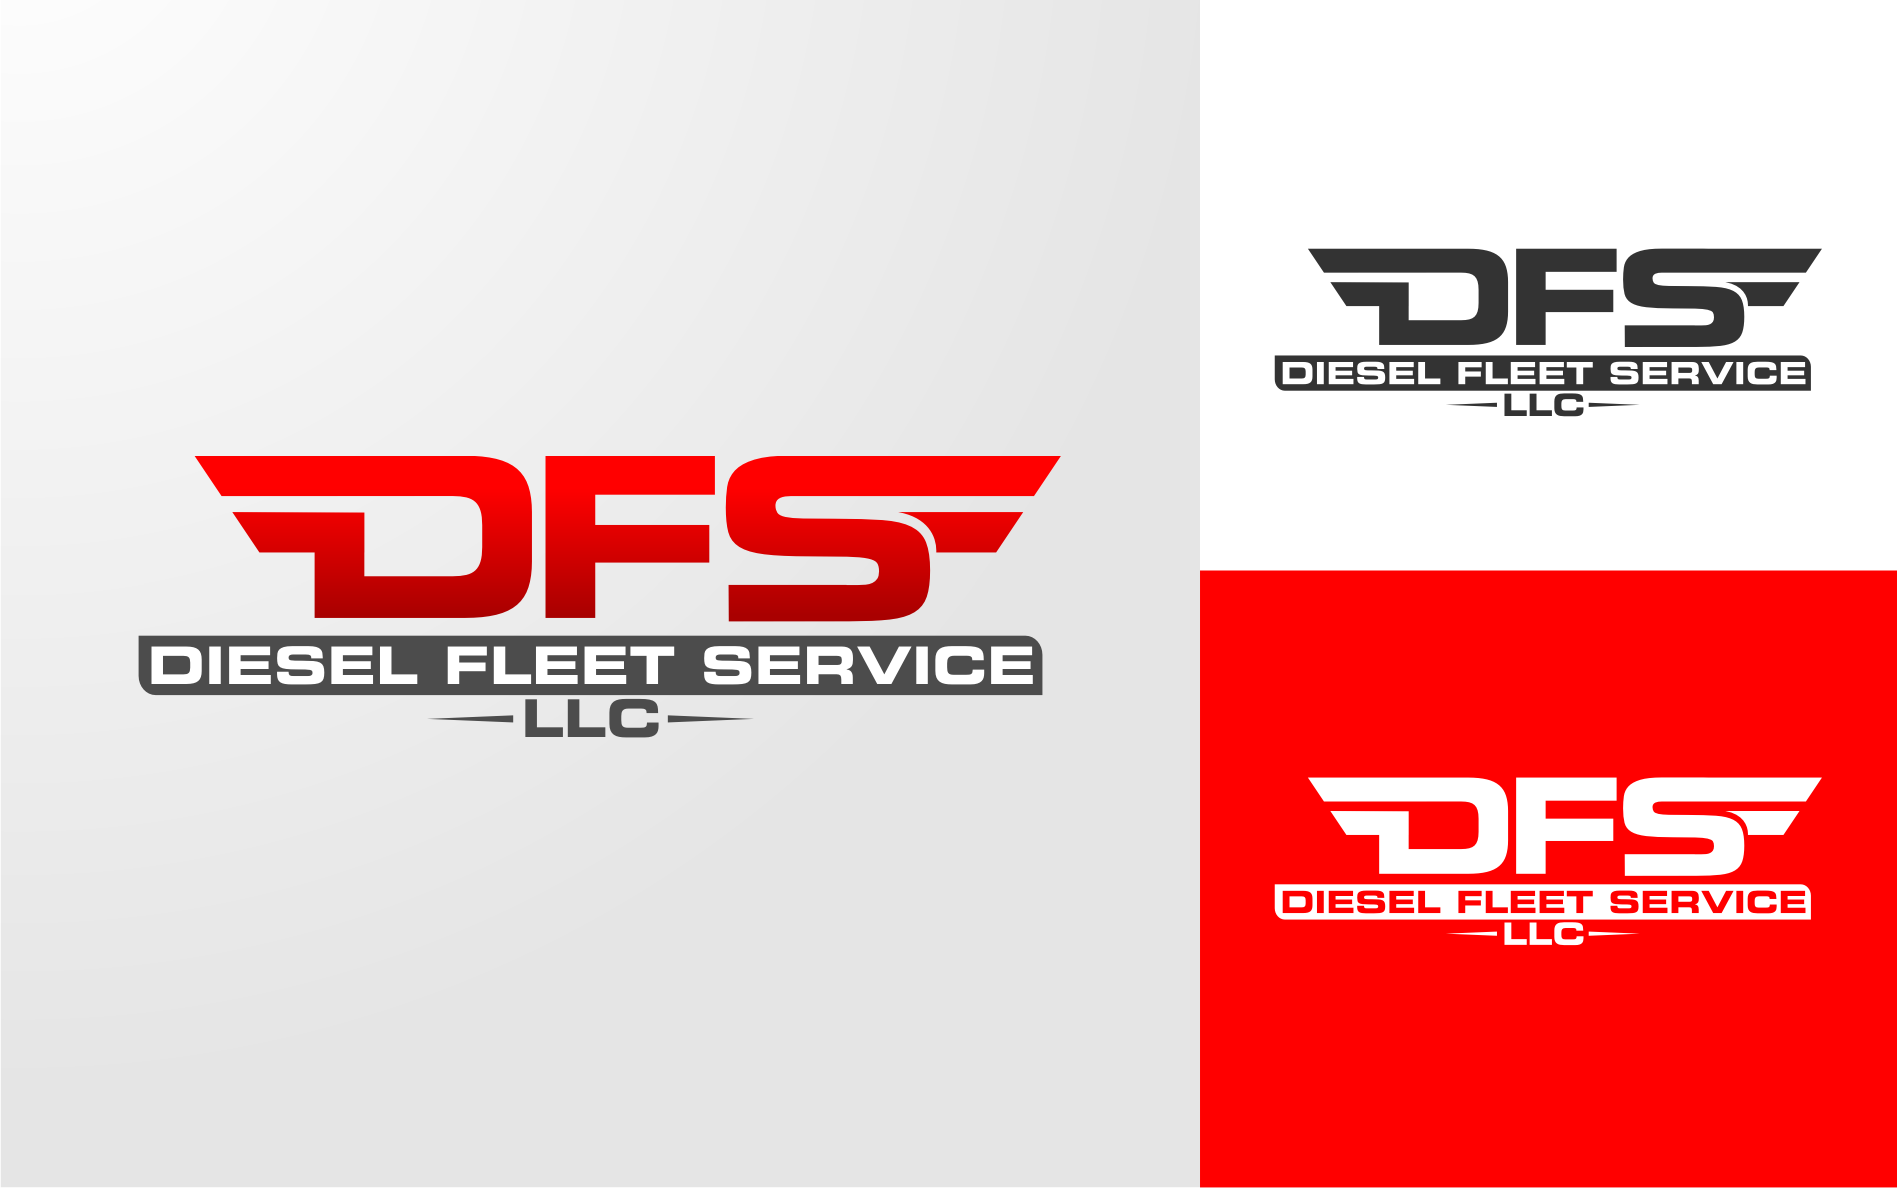 Logo Design by Tille Famz - Entry No. 83 in the Logo Design Contest Artistic Logo Design for Diesel Fleet Service, LLC.